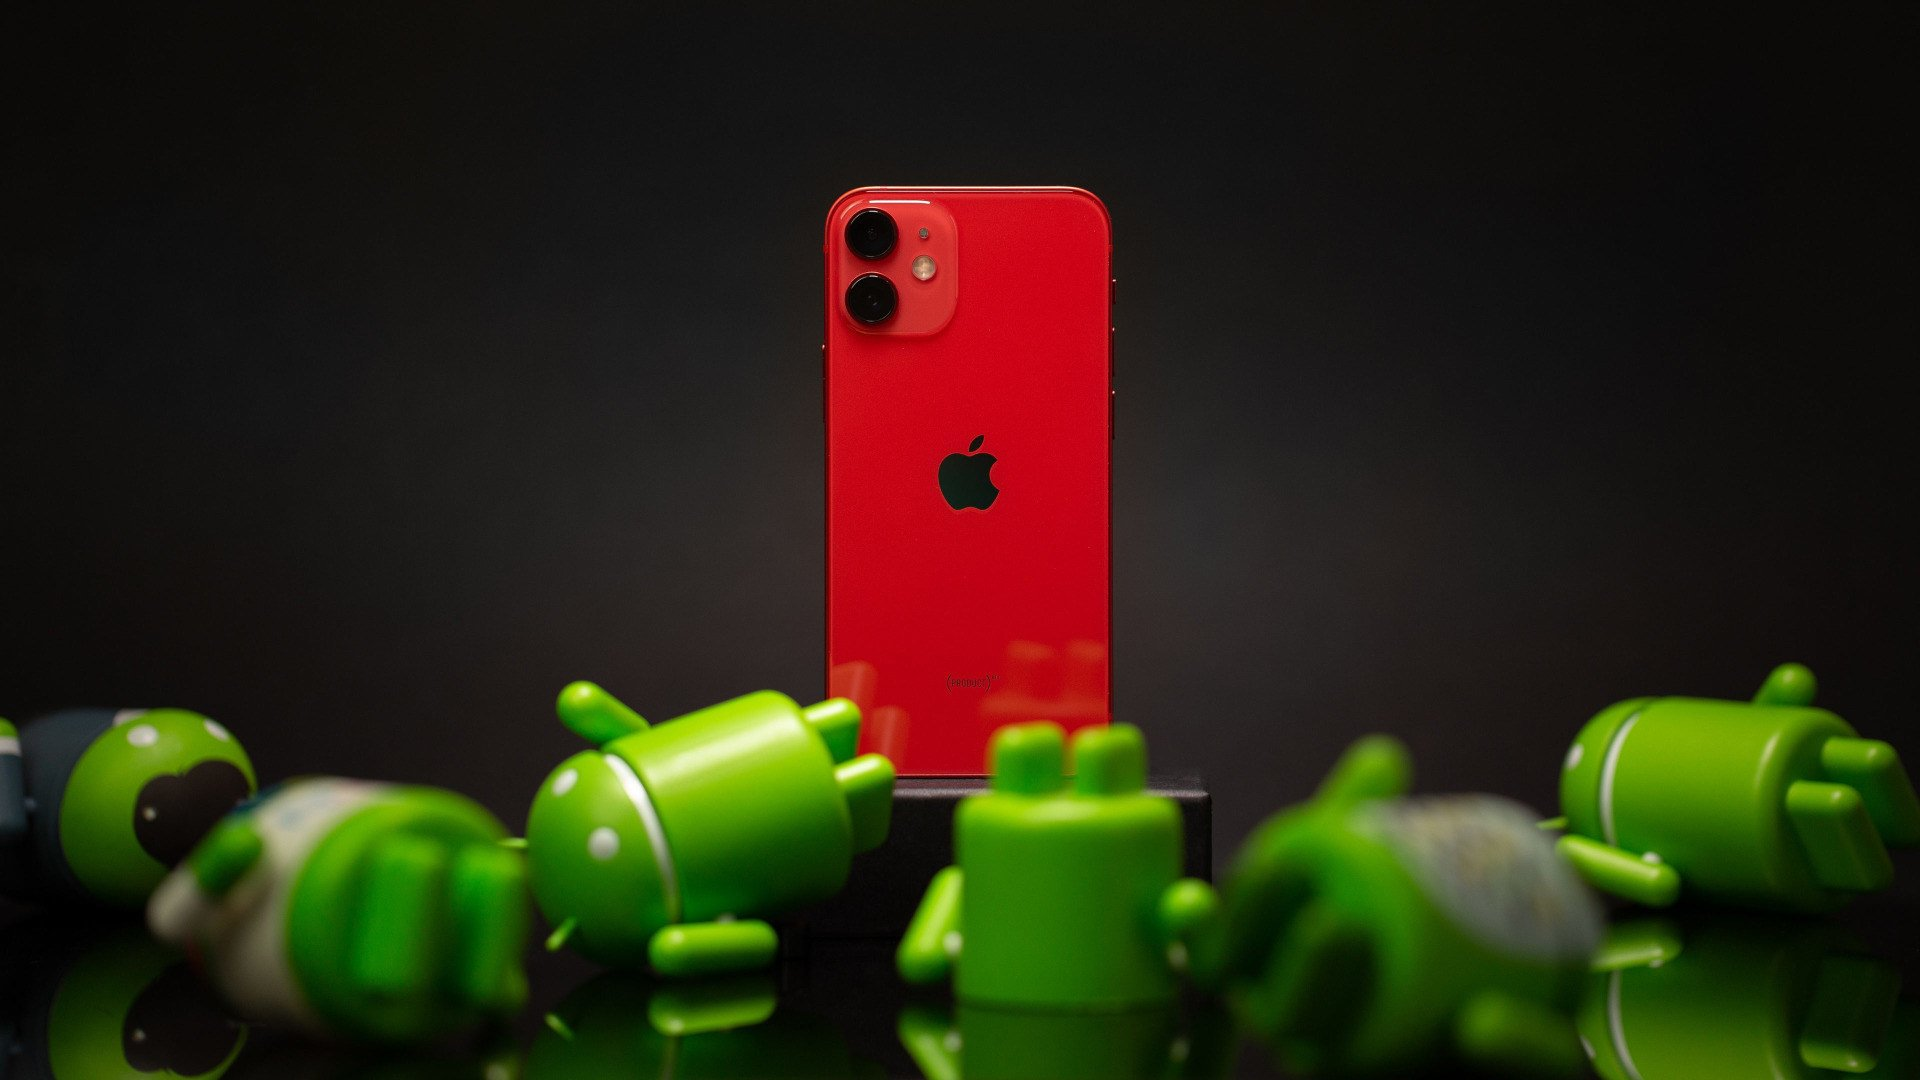 Android, Iphone, Bugdroid, Android Figur, Android Männchen